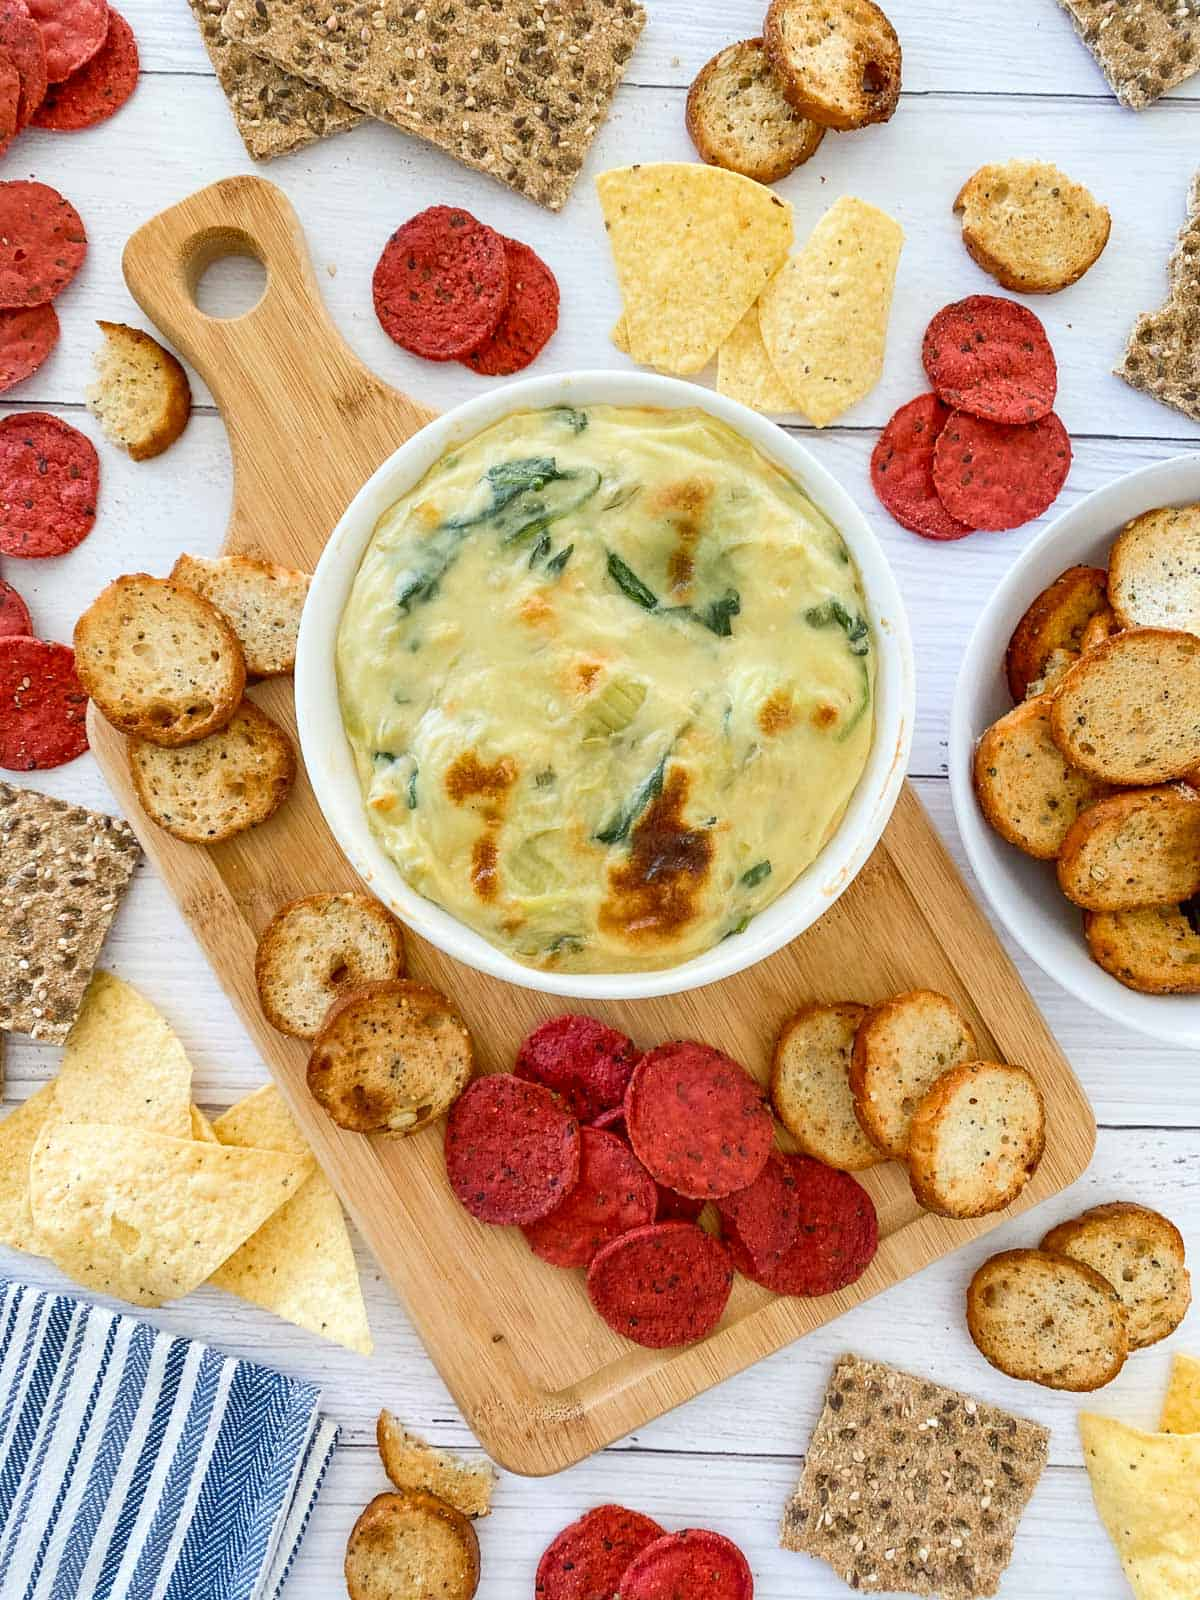 spinach dip in oven safe dish after broiling with crackers and chips scattered around the dip